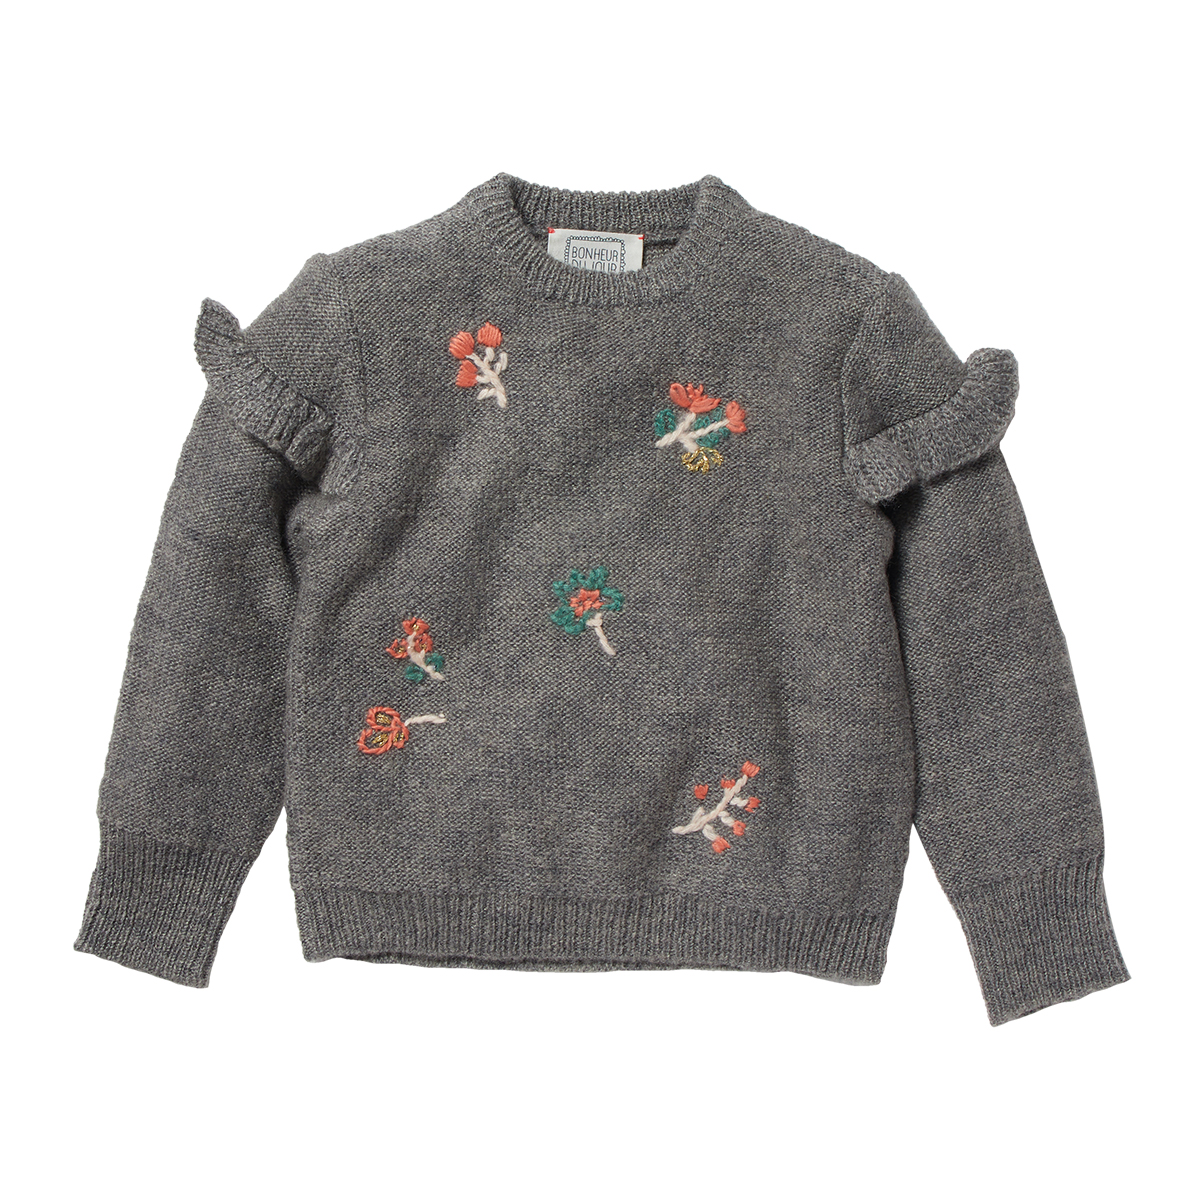 Bonheur Du Jour Emmy Sweater in Anthracite